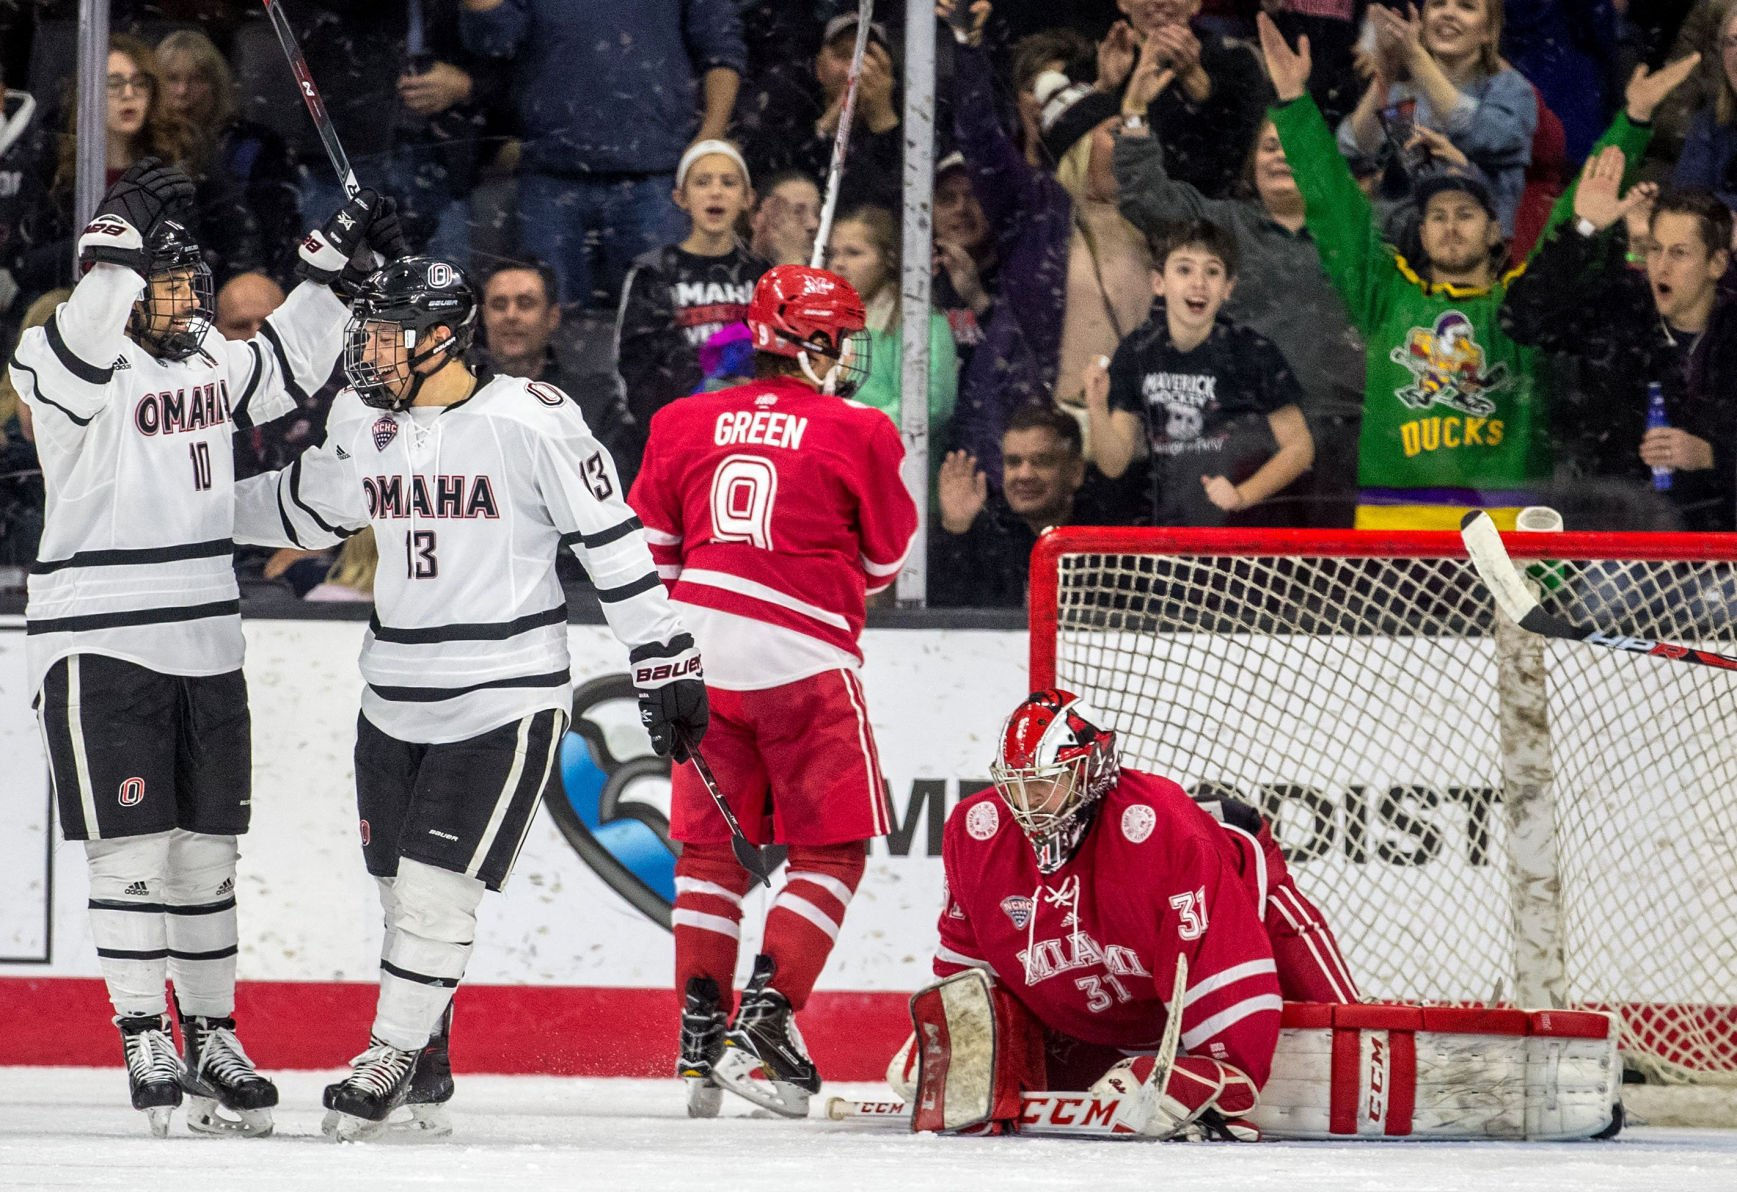 NCHC: Yet Another Ranked Opponent In Town As Mavs Search For Goals And A Way Off NCAA Bubble